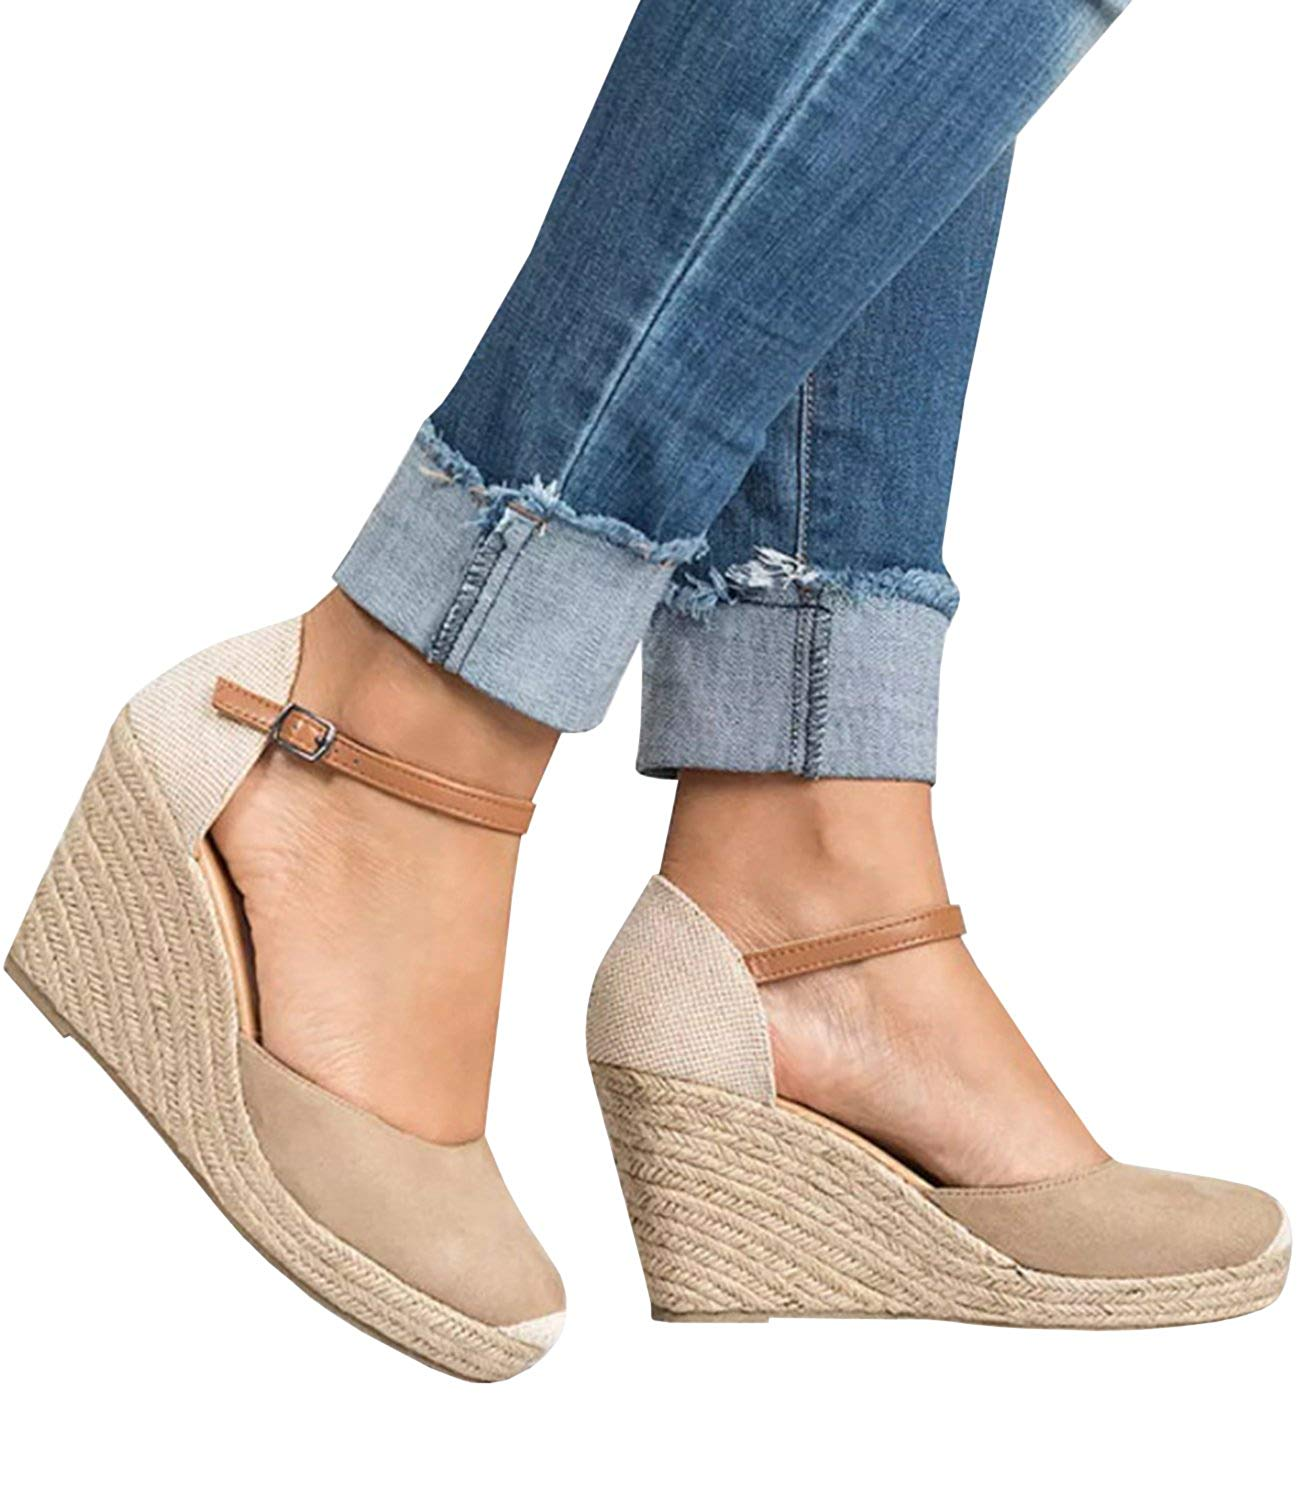 fd8a1b91dbb5 Get Quotations · Pxmoda Women s Boho Braided Wedge Sandals Casual T-Strap  Wedge Heel Sandal Shoes